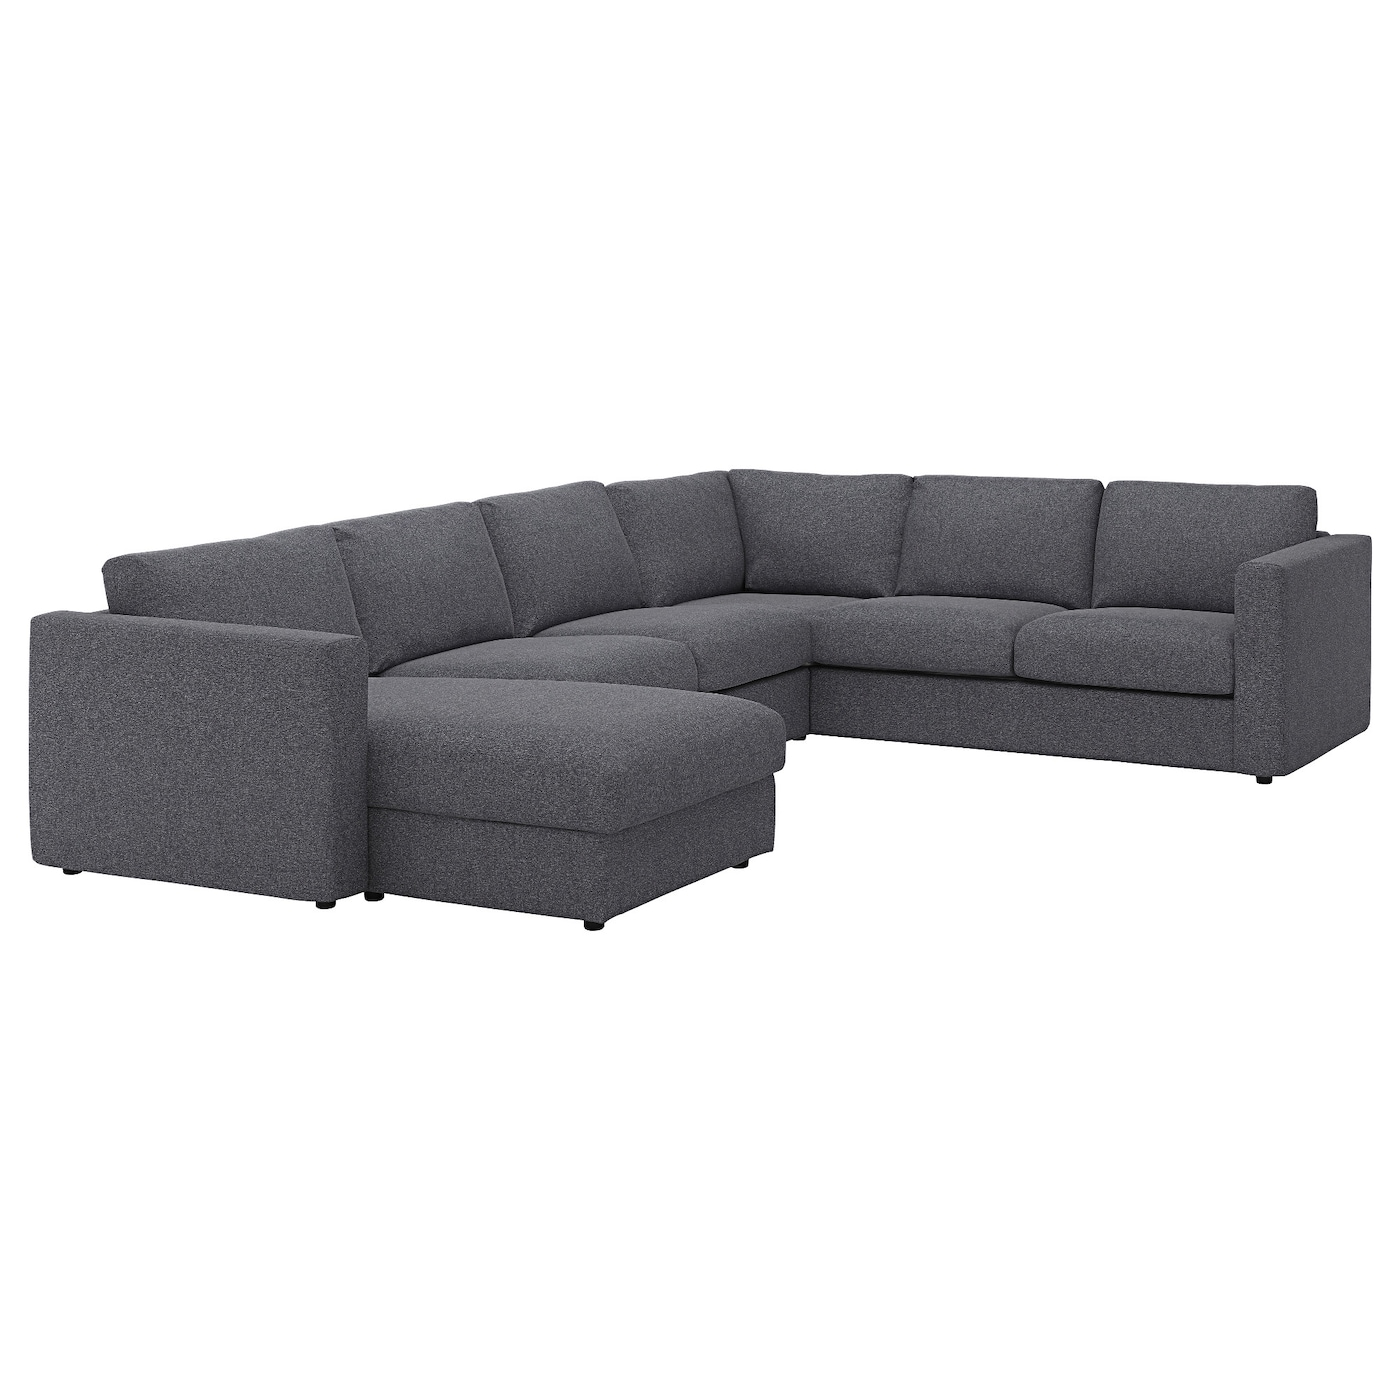 Vimle corner sofa 5 seat with chaise longue gunnared - Chaise en plastique ikea ...